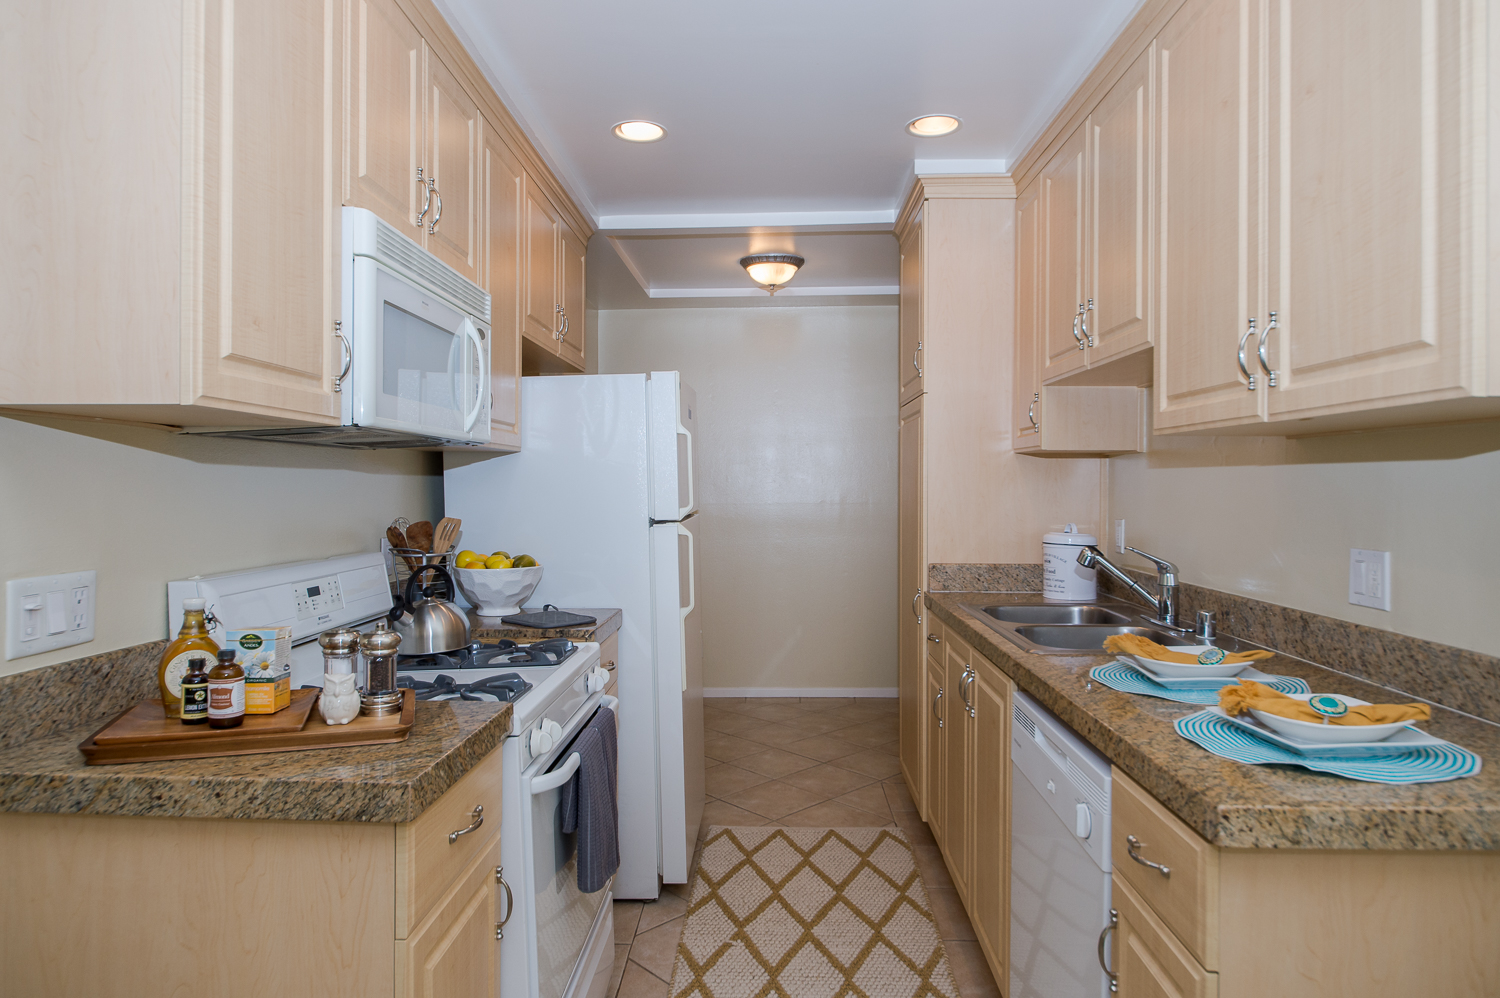 Studio Apartment Venice Ca los angeles apartments and houses for rent near los angeles, ca